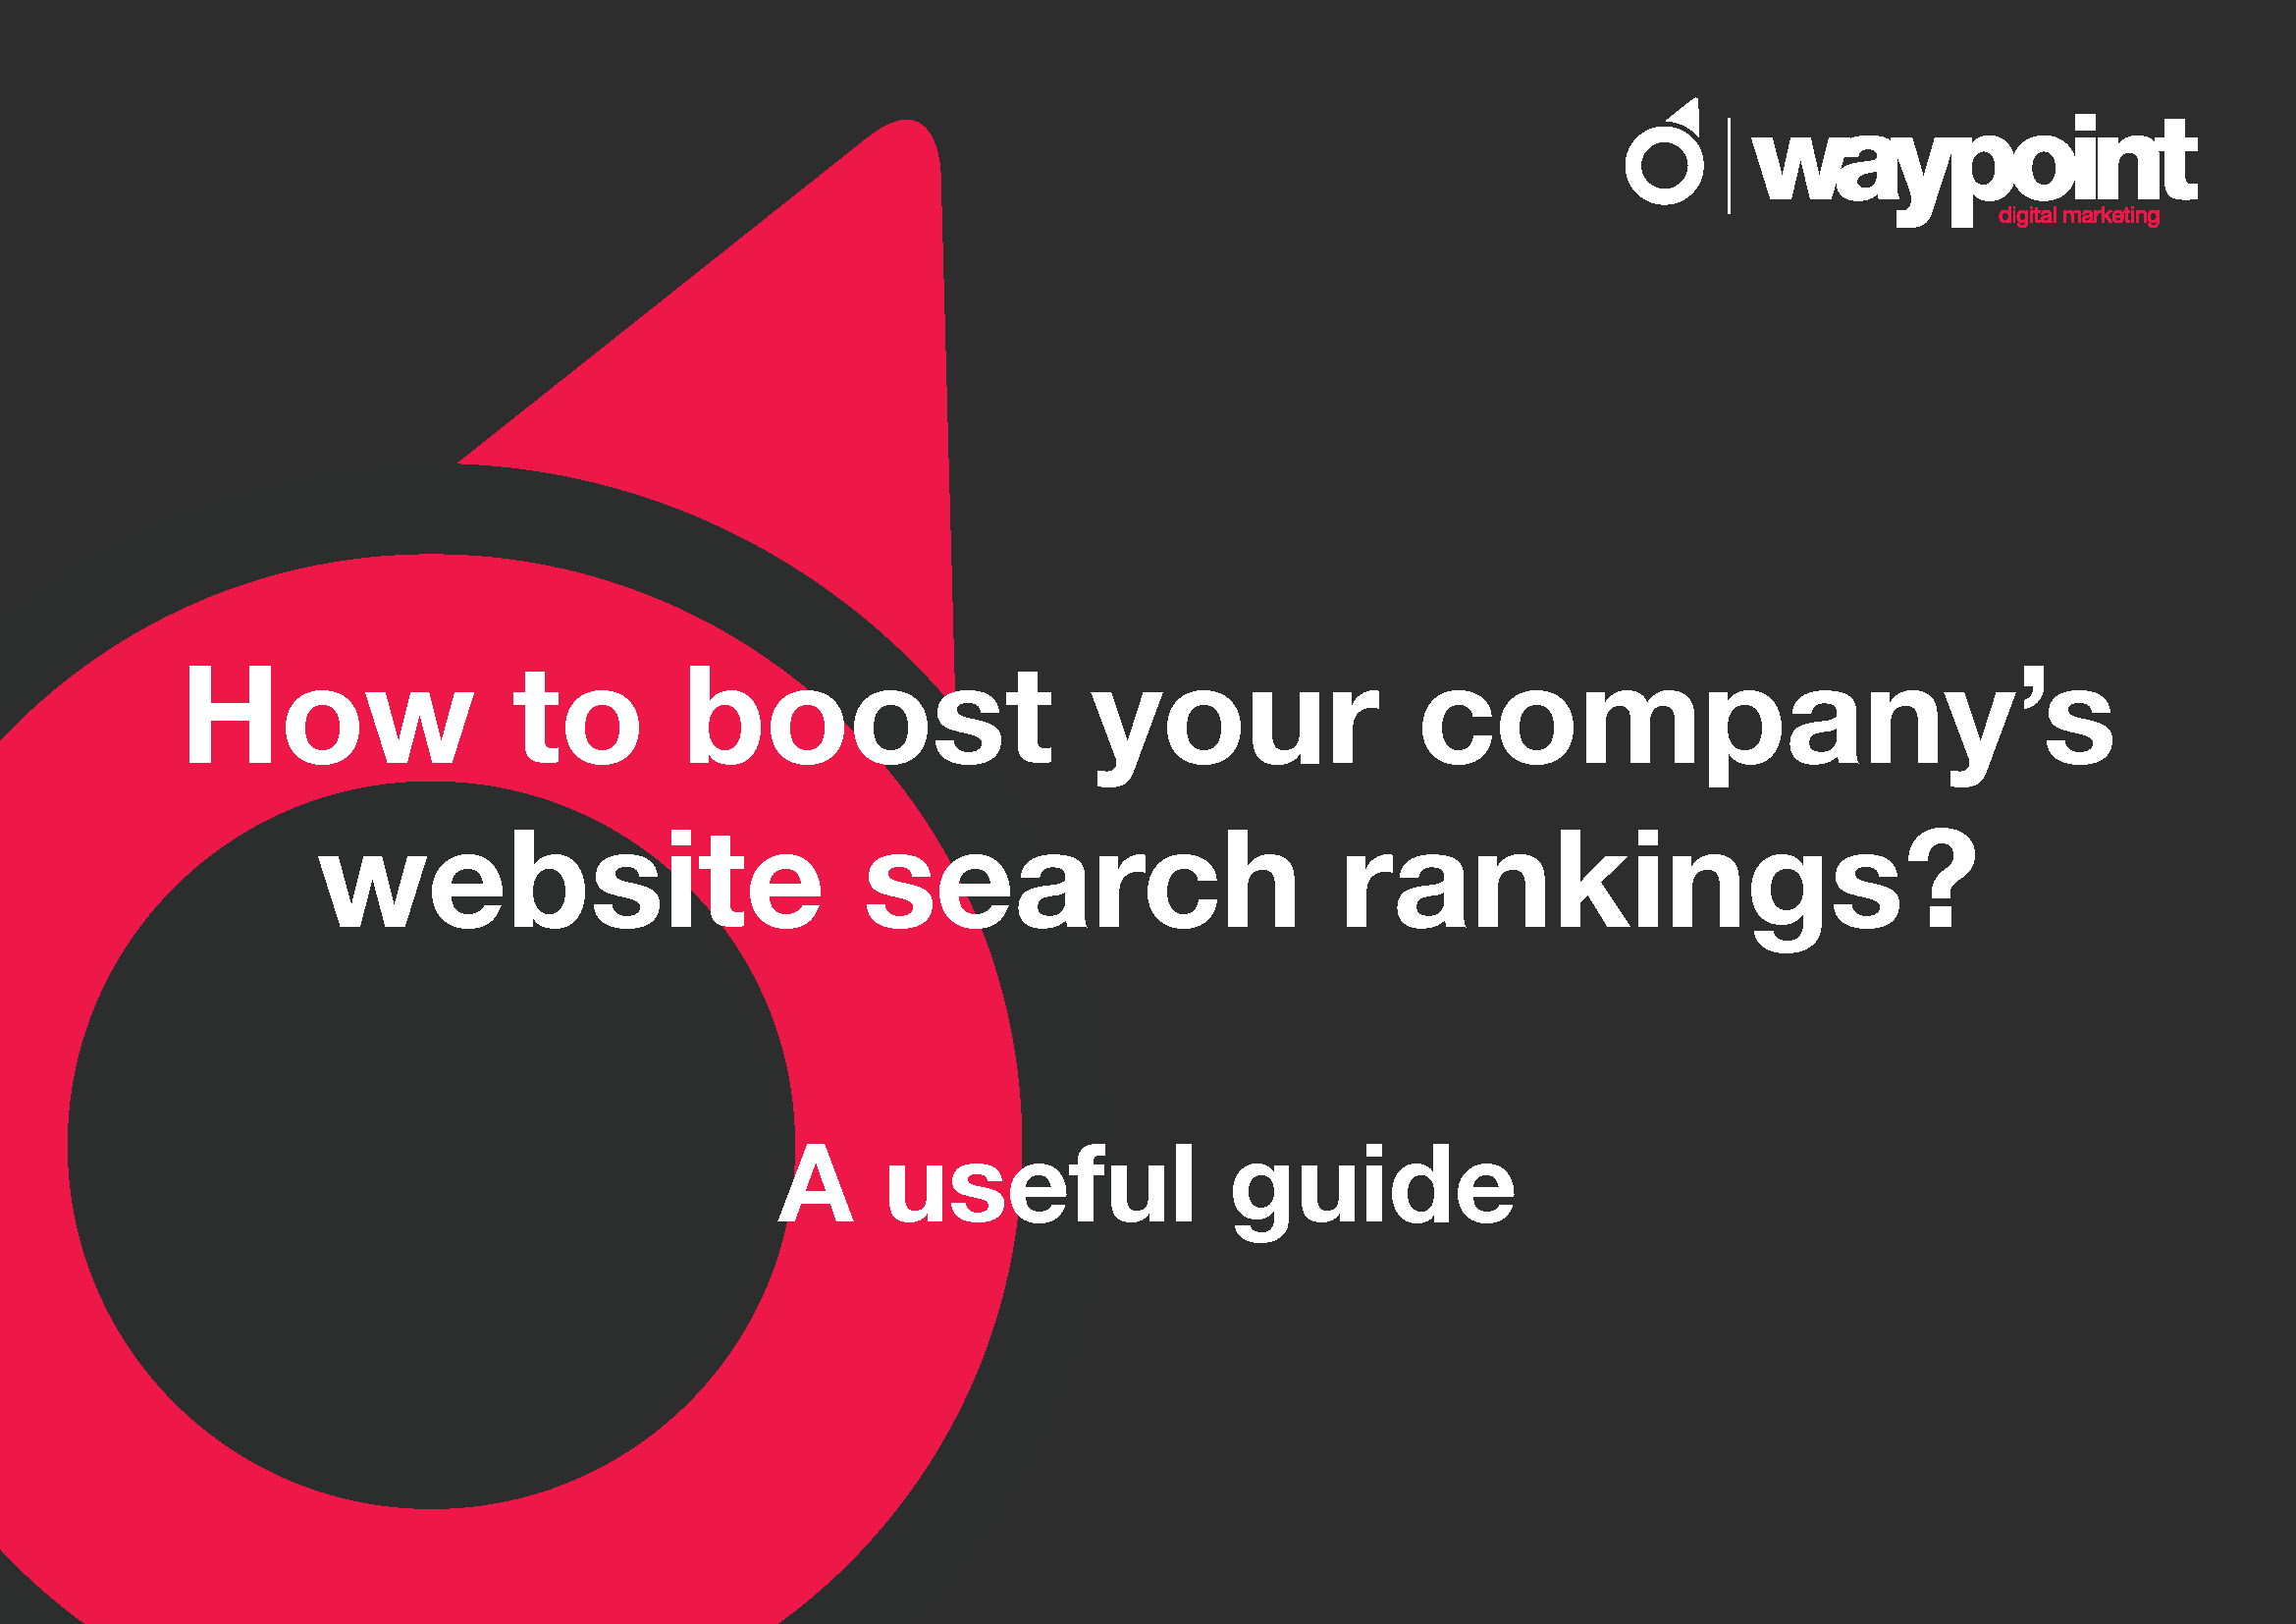 How to boost your company's website search rankings?